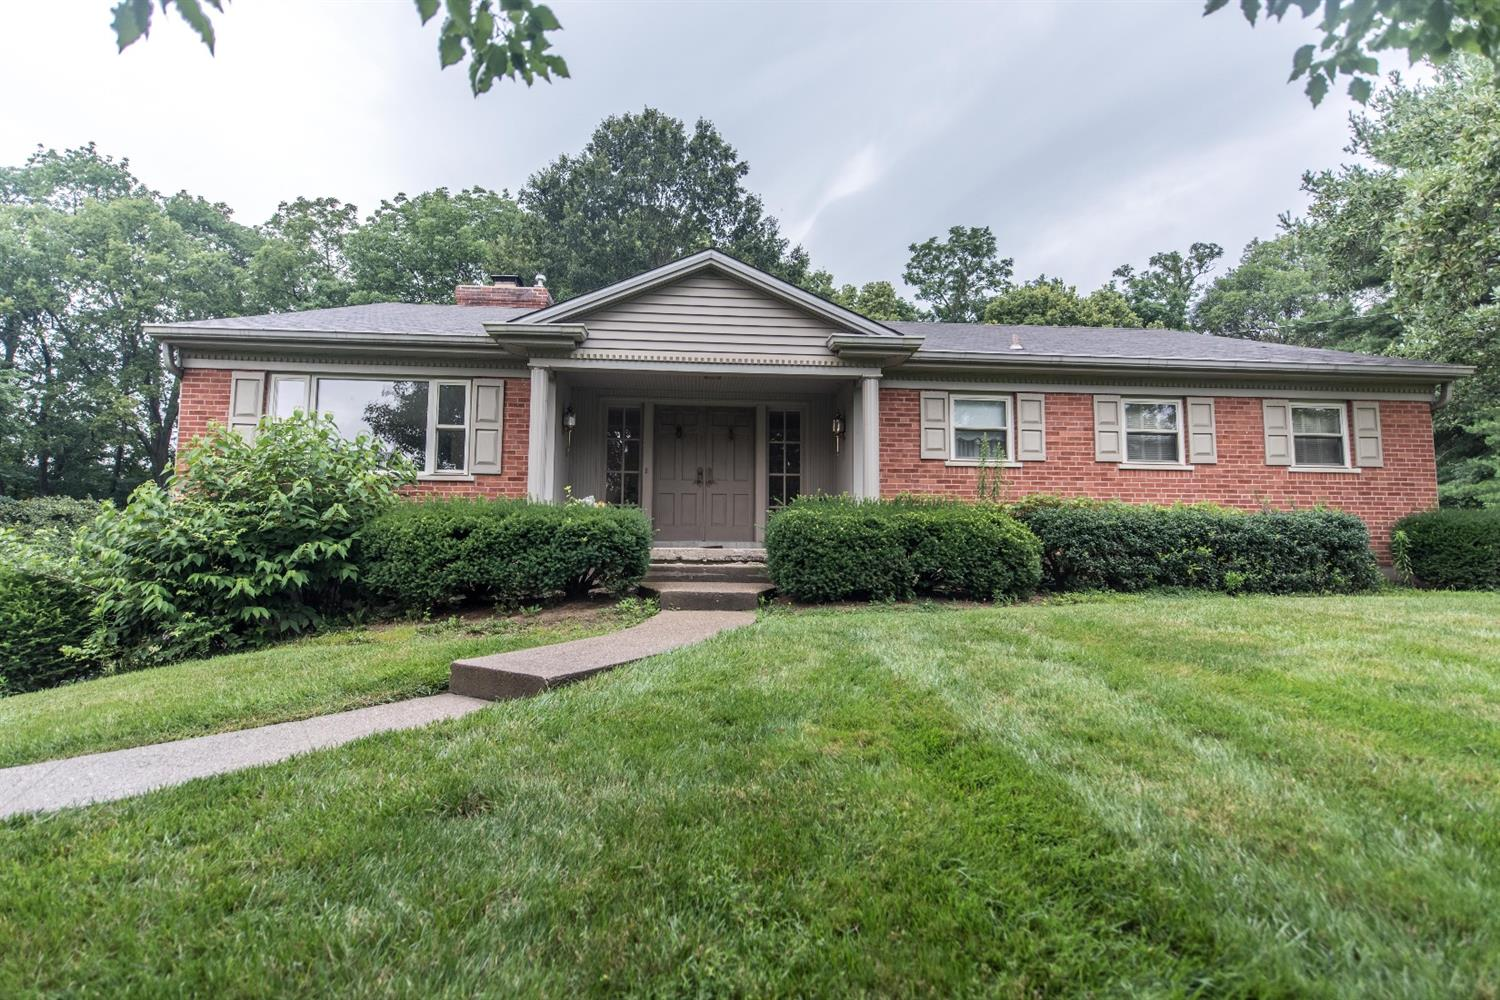 9085 Hoffman Farm Lane, Indian Hill, OH 45242